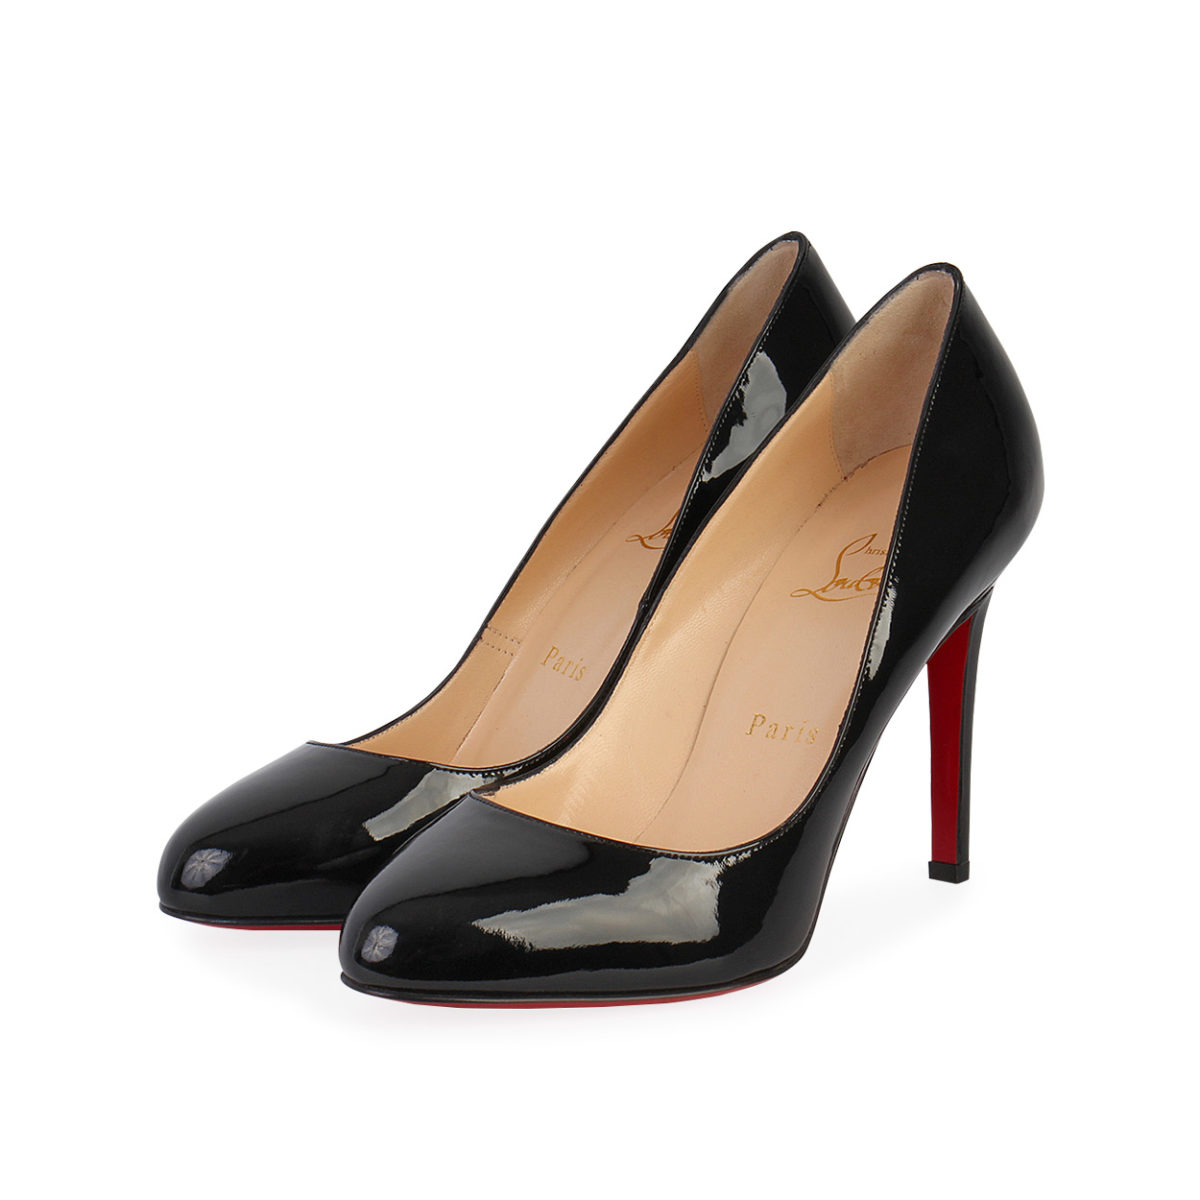 689f6971bf0 CHRISTIAN LOUBOUTIN Patent Leather Simple Pumps Black - S: 37.5 (4.5)